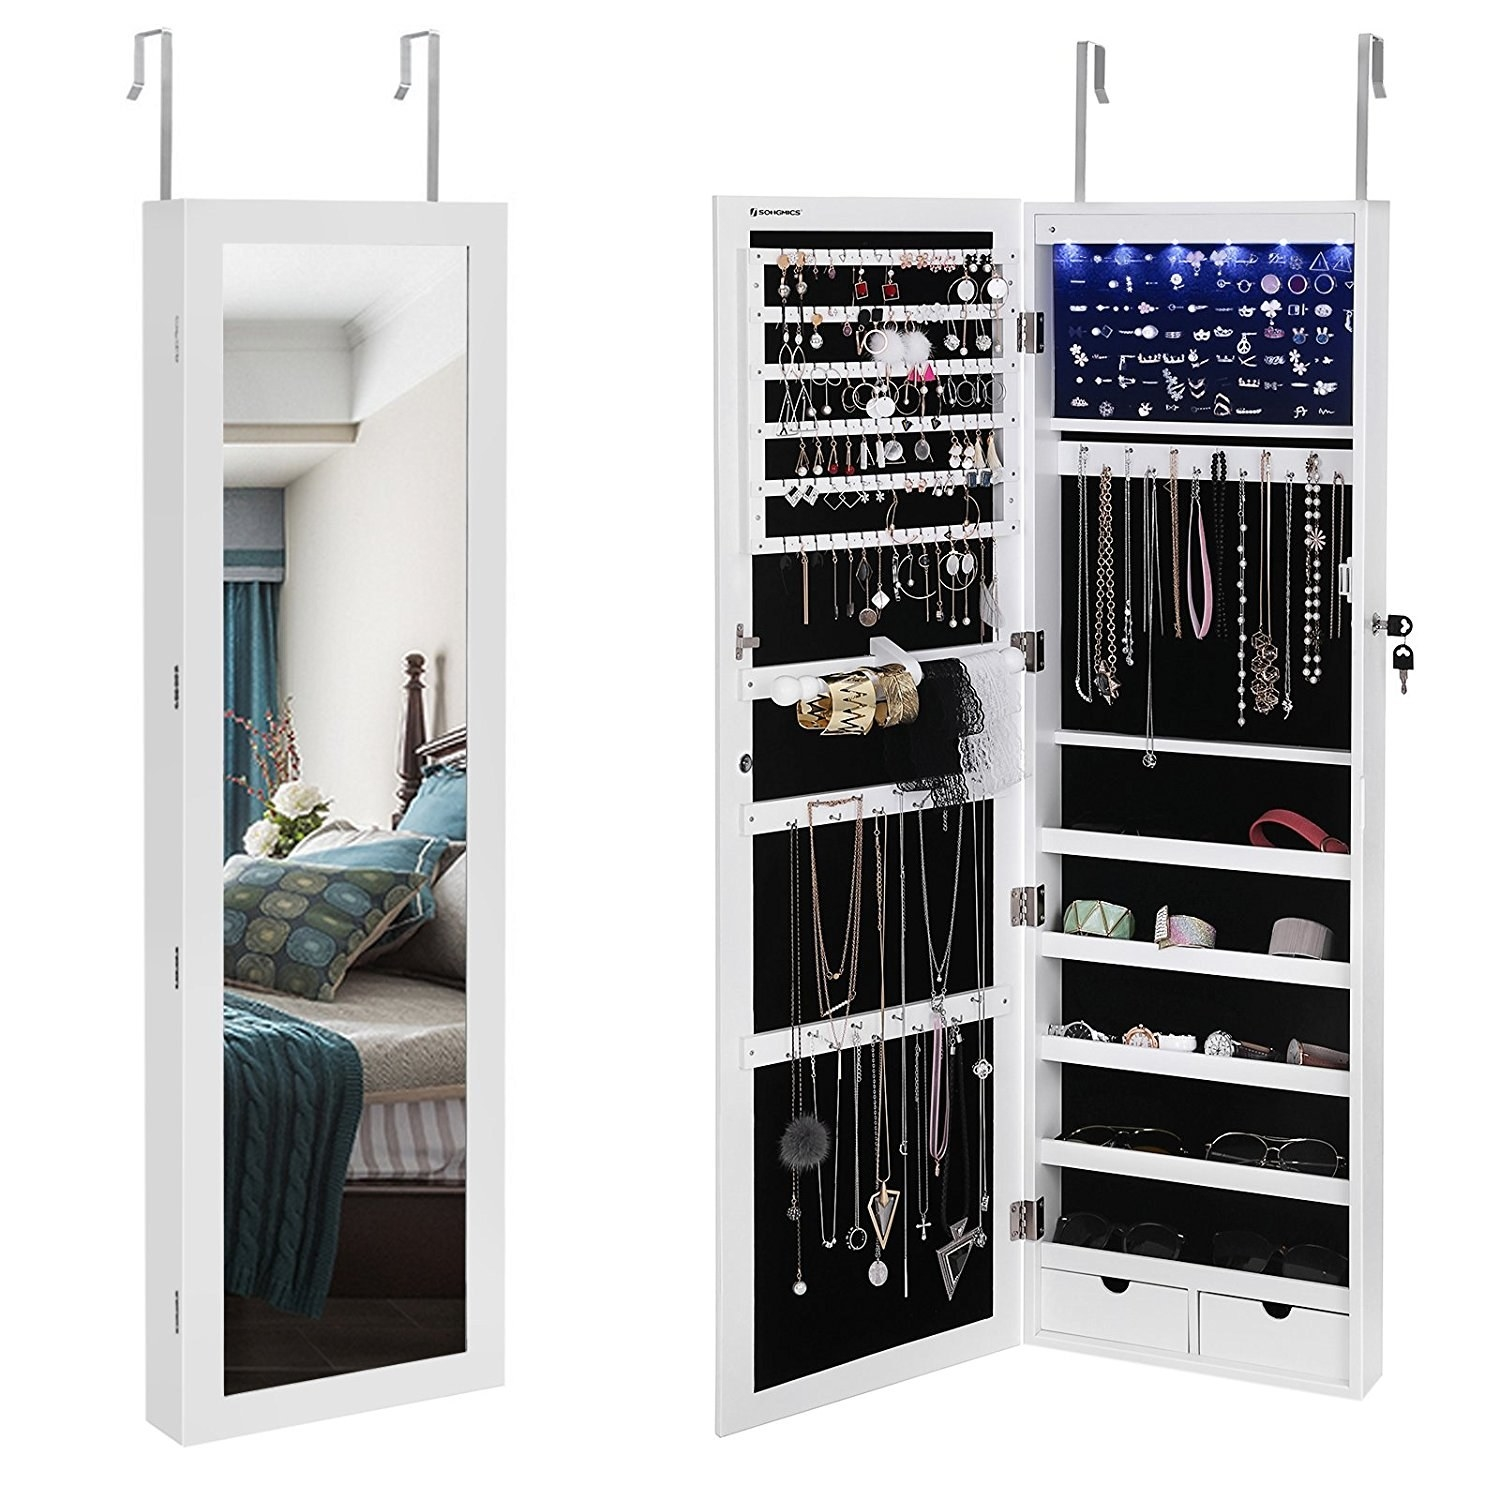 "This organizer can hang over the door or on a wall. It has battery powered LED lights inside to help you see all your jewelry and a lock to keep everything safe.Promising review: ""This is one of those rare products I am very excited about! It really lived up to the hype and great reviews. I recently had a necklace of importance go missing on one of my days a cleaning crew came in where a new employee was with my regular crew. I needed some way to lock up my valuable and also very sentimental jewelry pieces (this is not burglar-proof by any means). I had a necklace tree, earring tree, and three different jewelry boxes and my husband had two boxes of cuff links that I also put into this cabinet. There is so much room in this very organized cabinet. It has loads of earring space, necklace space, and the shelves are nice for miscellaneous items like sunglasses, watches, pins, etc. It has two little drawers for miscellaneous items and a pouch under the right side necklace rack. It has several different heights you can hang it at if you are using the over the door mount. The LED lights are awesome and illuminate really well. It came well wrapped up in plastic and inside a styrofoam box and not a scratch was on it. I LOVE this and highly recommend."" —Cindi L. Price: $127.99 (available in two colors)"